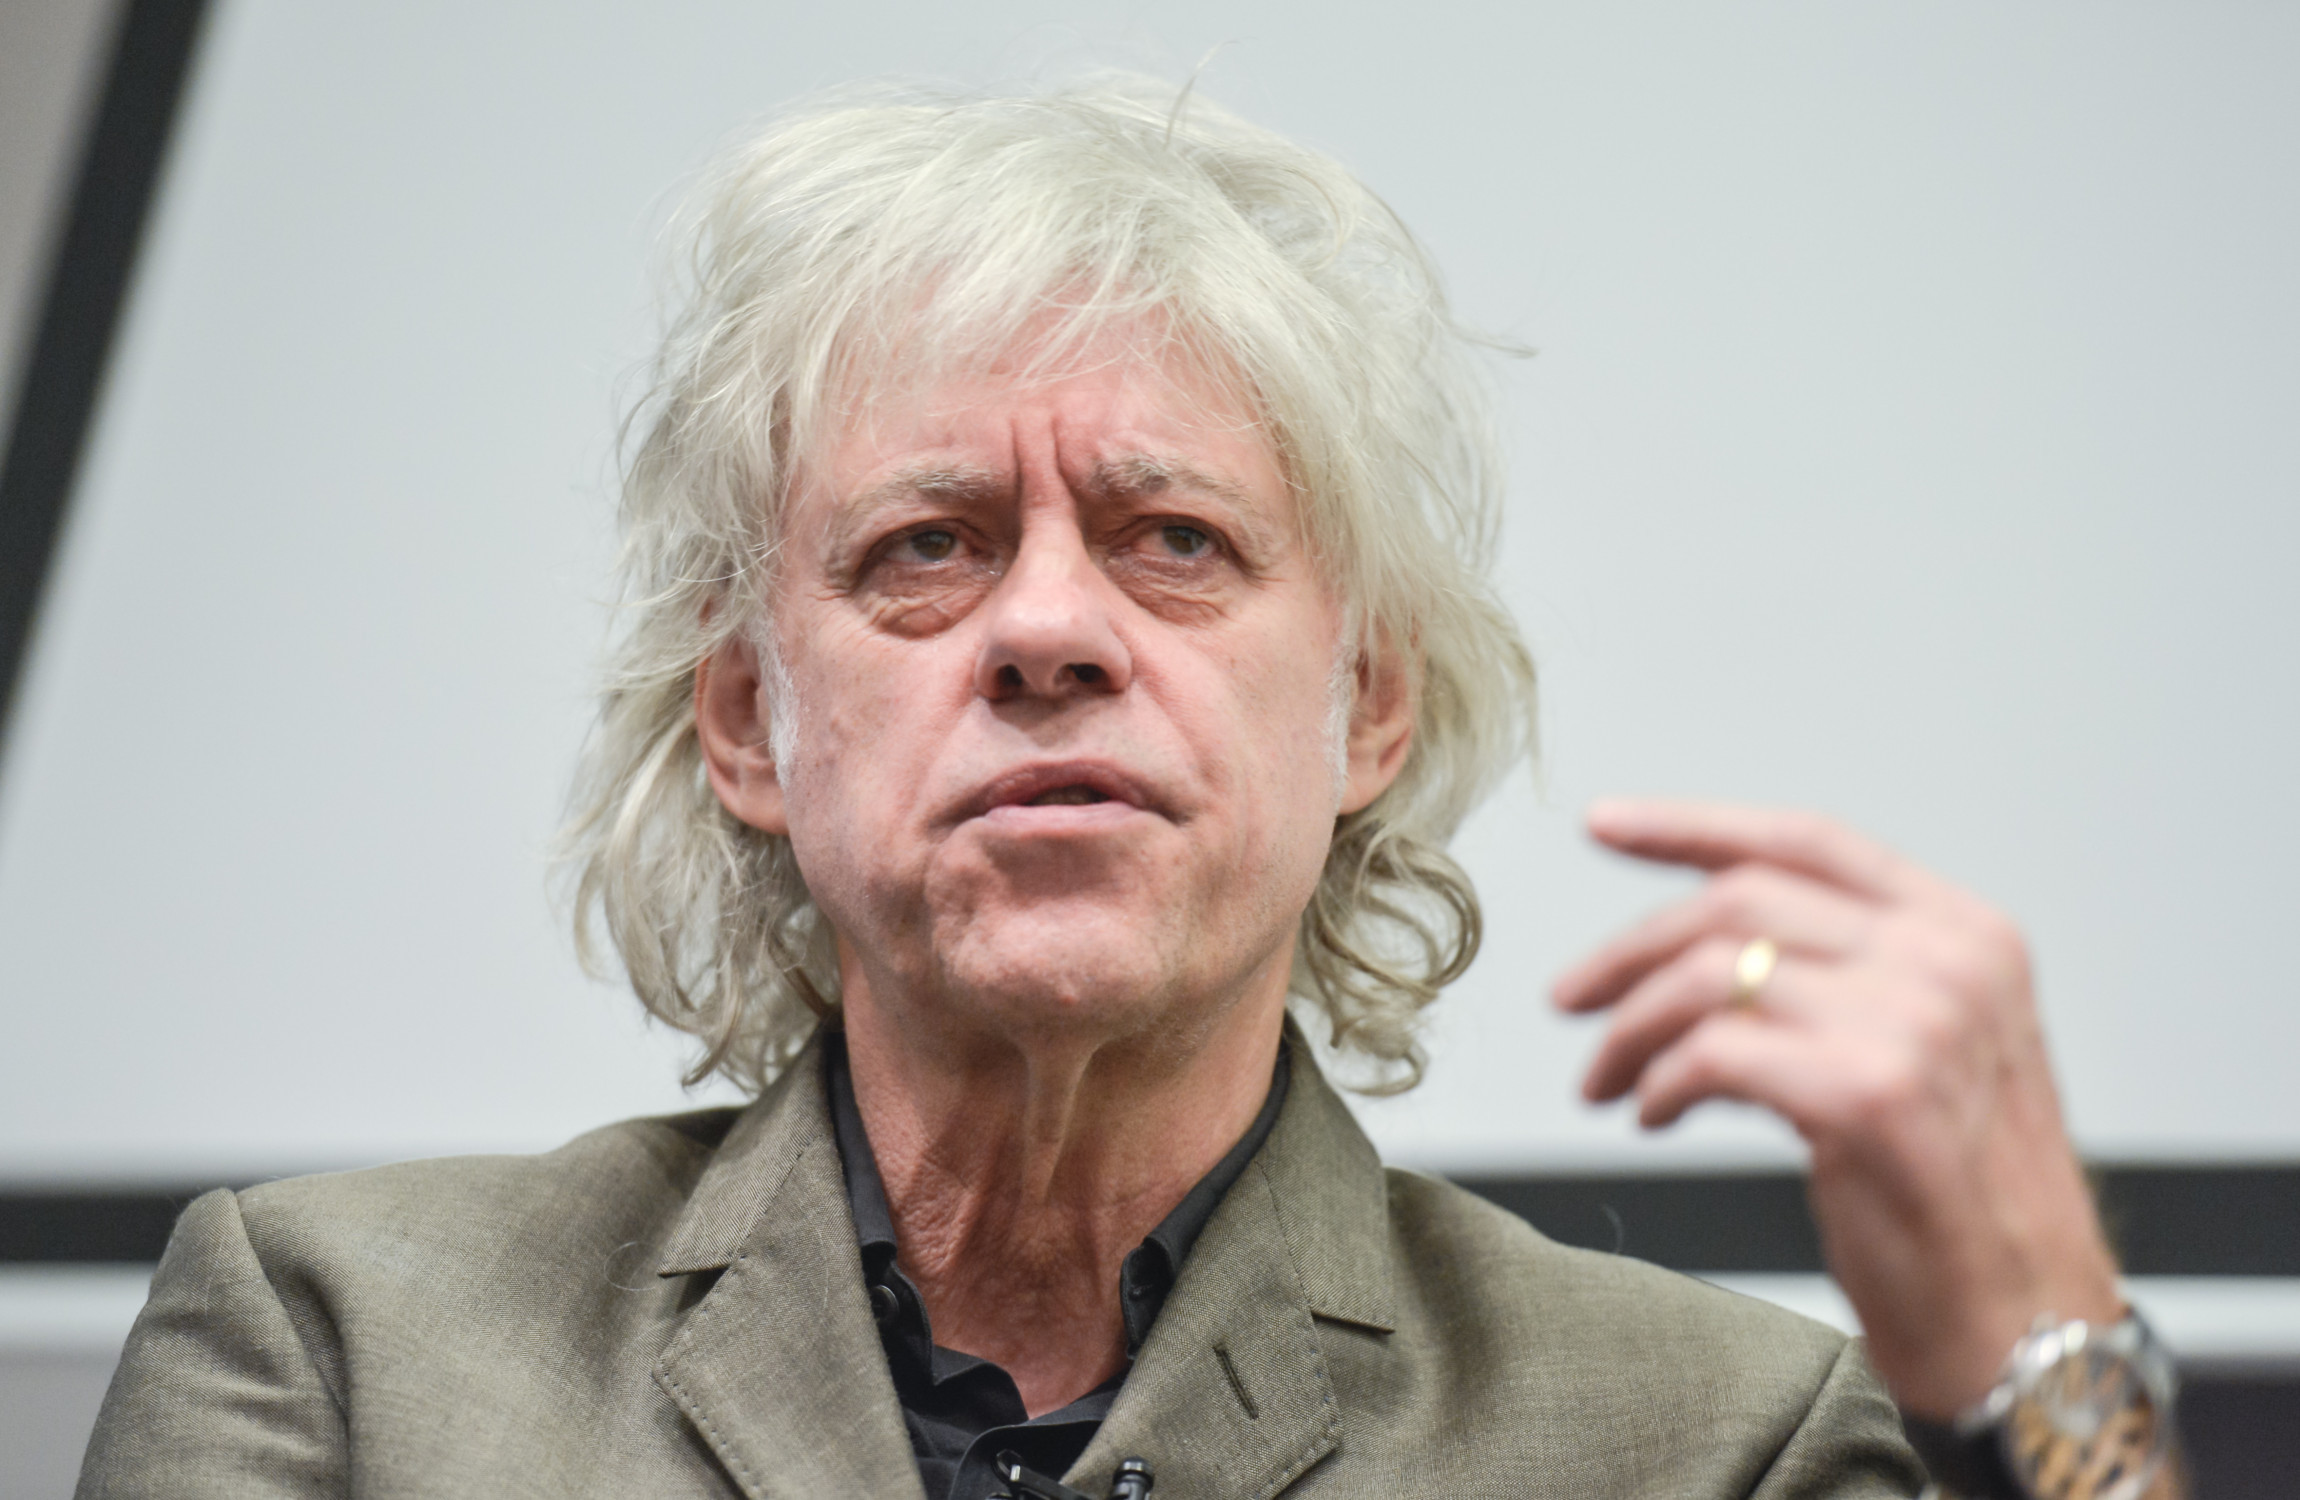 Bob Geldof Lambasts Aung San Suu Kyi During Passionate Speech